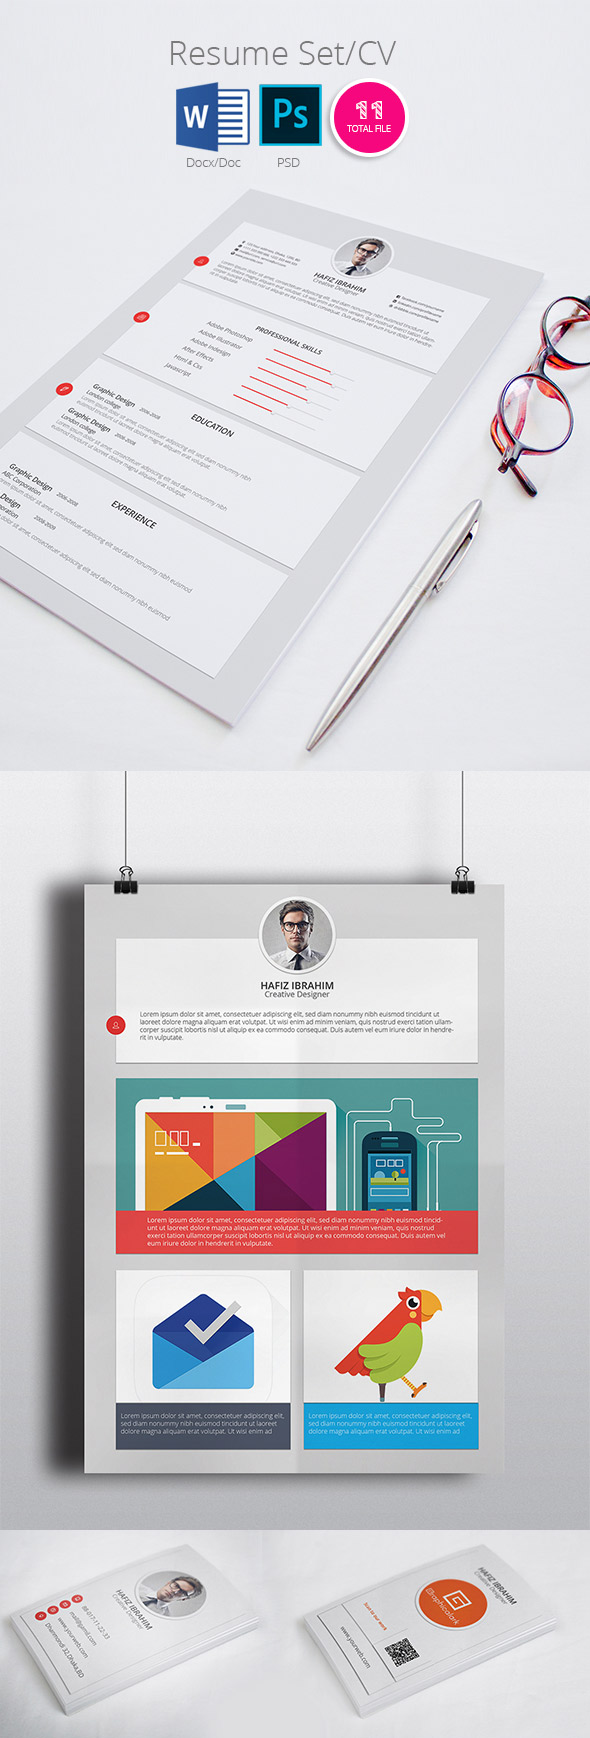 Modern Resume/CV Template Design